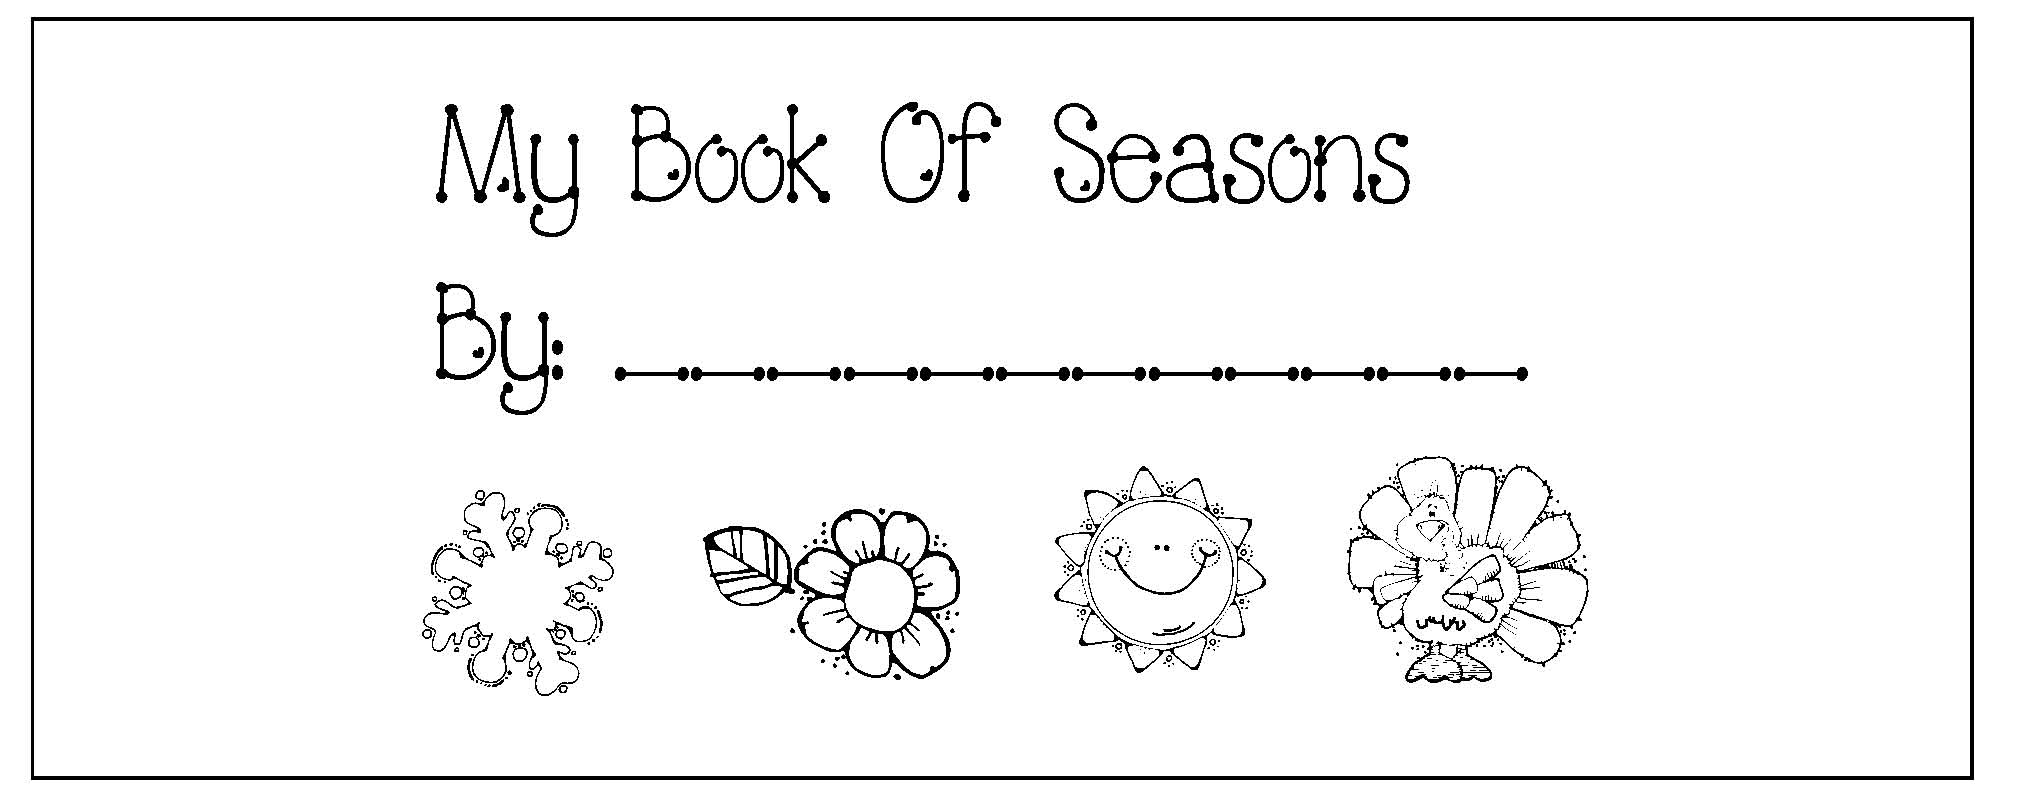 months of the year activities, calendar activities, calendar lessons, activities for the seasons, season booklet, month booklet, daily 5, calendar lessons, common core calendar, common core months, common core seasons,